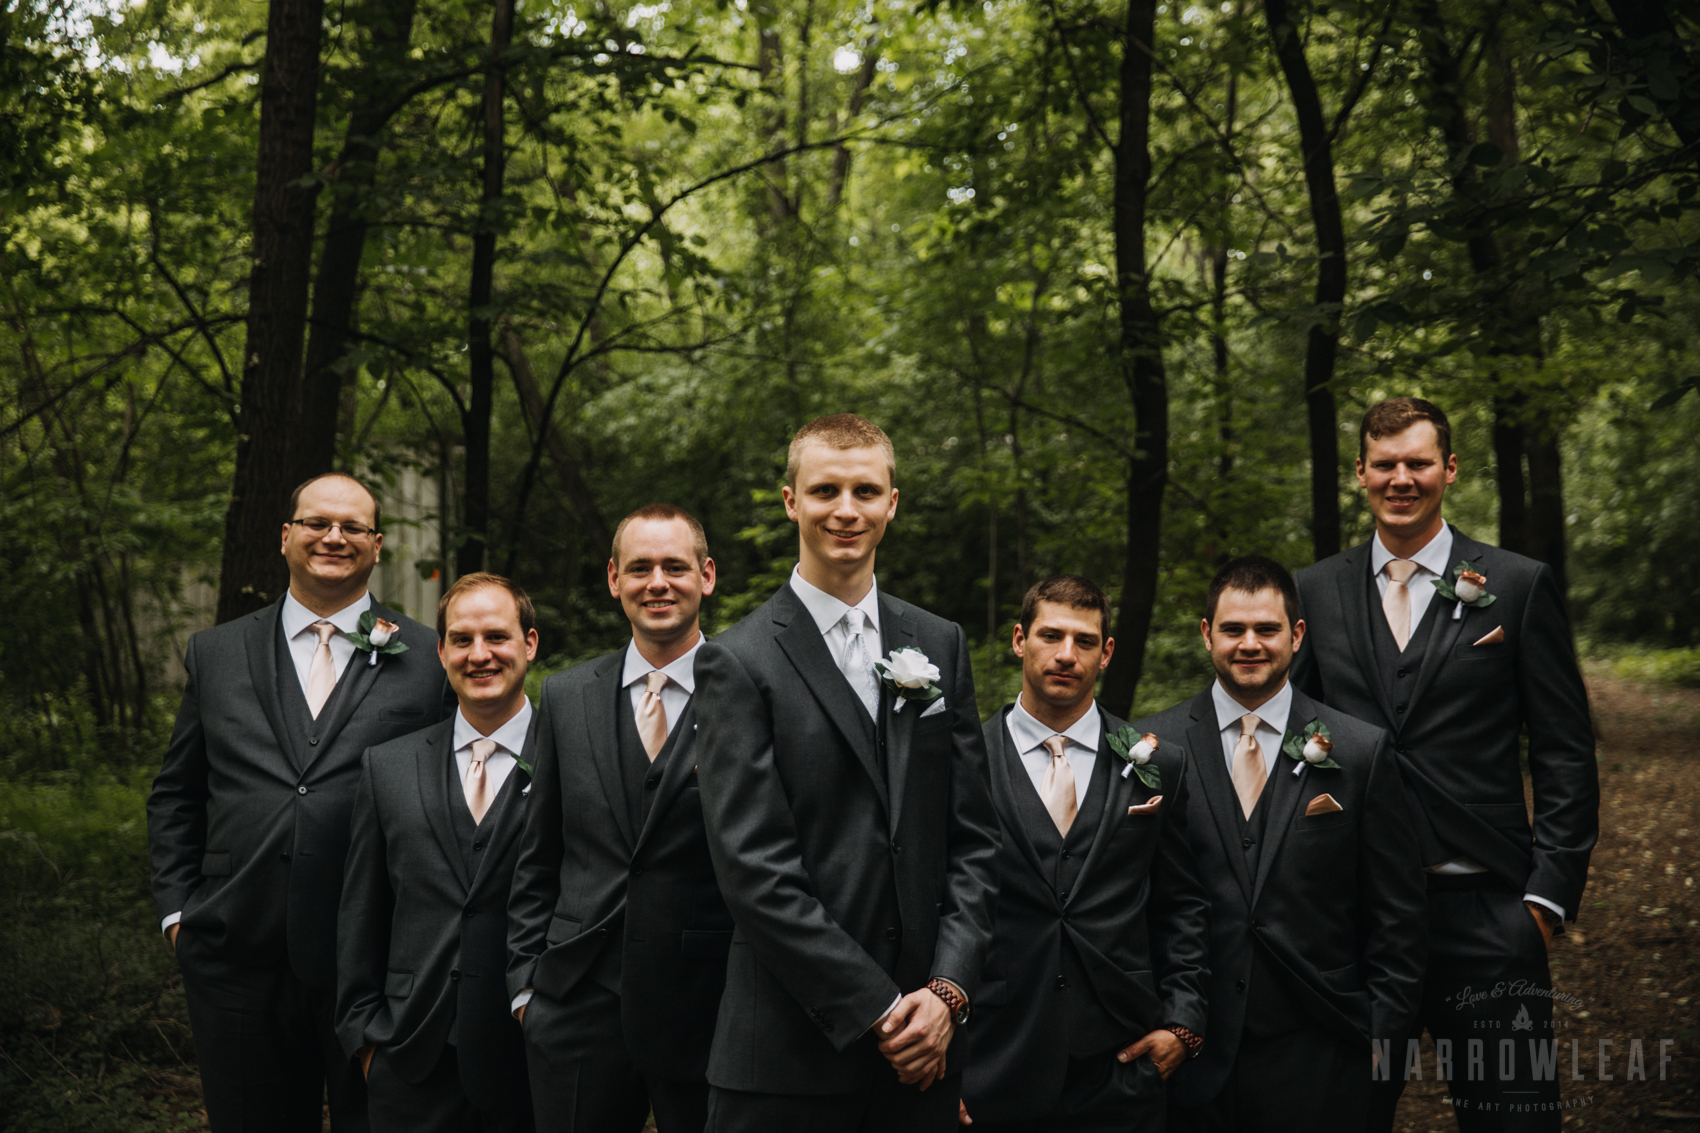 Camp-wooded-wedding-style-midwest-wi-bridal-party-304.jpg